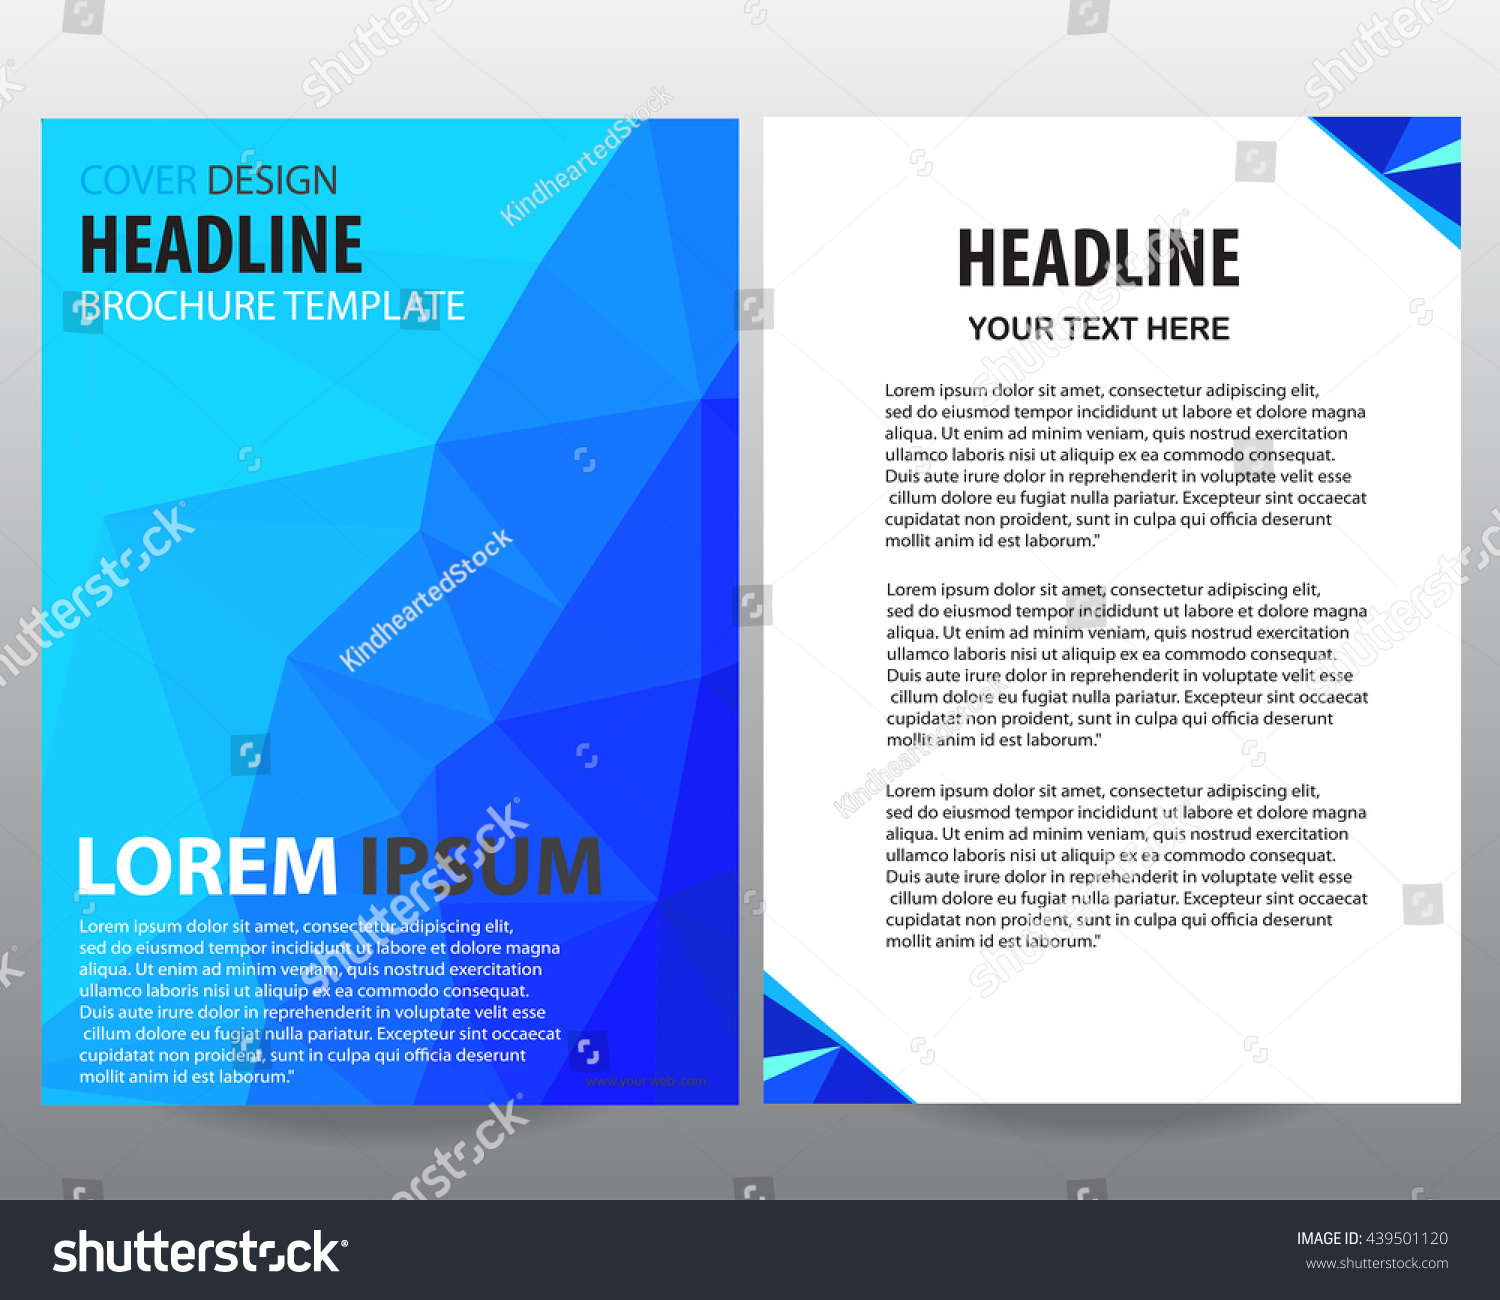 blue annual report abstract business brochure design vector presentation cover blue annual report abstract business brochure design vector template in a4 size document or